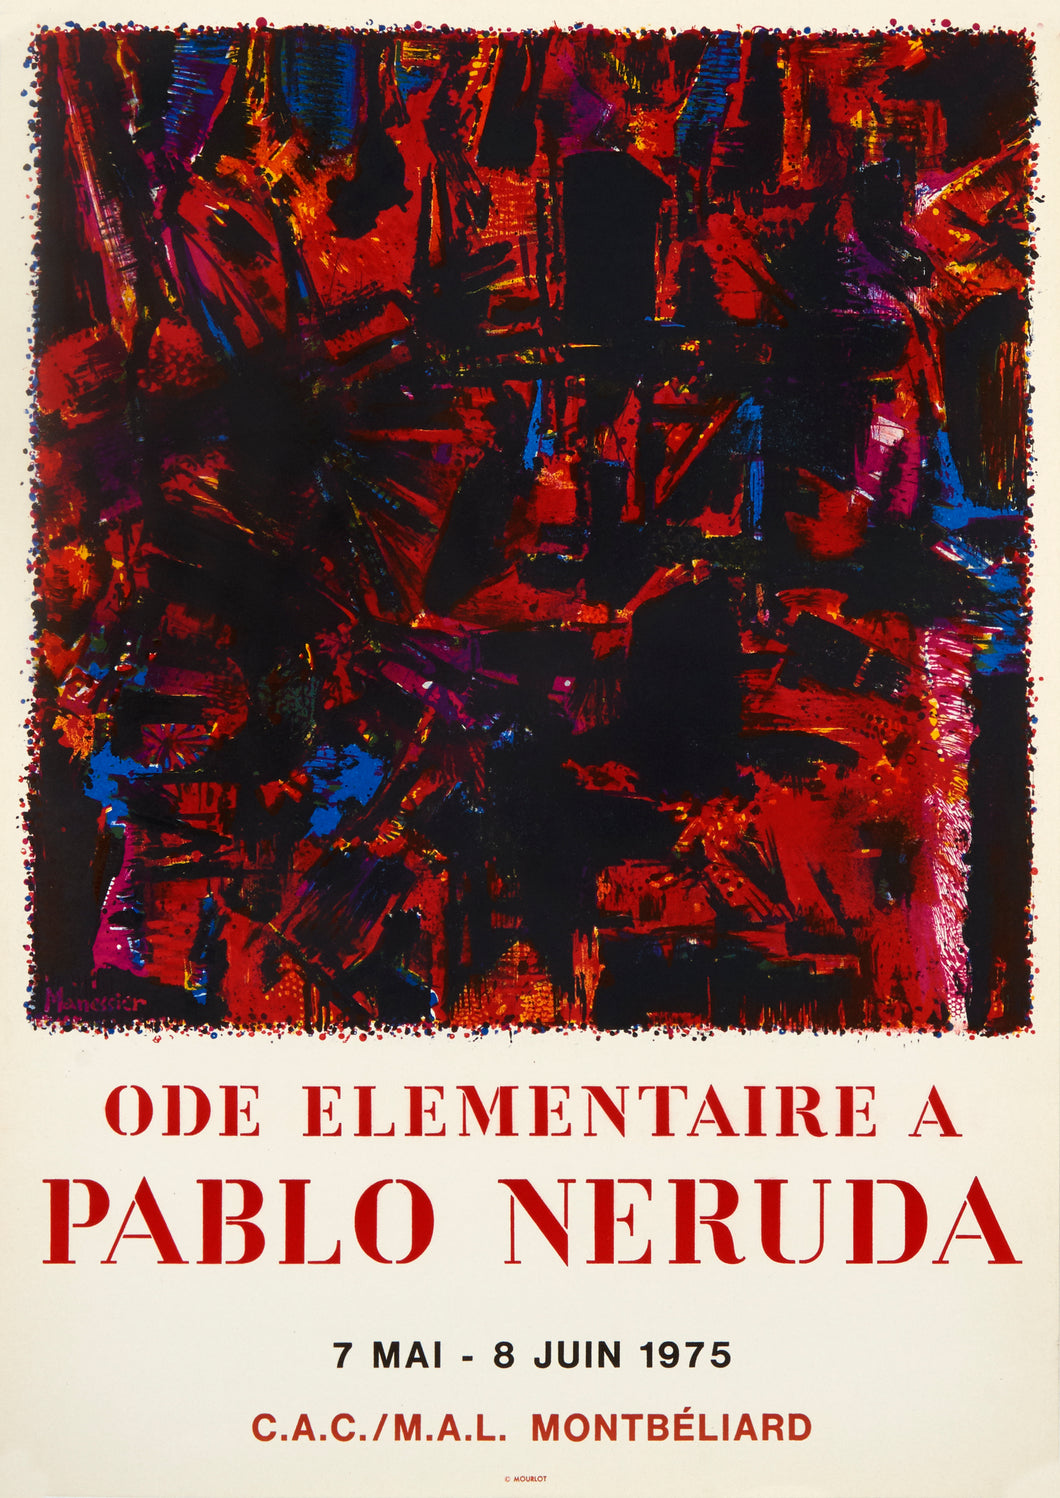 Ode elementaire a Pablo Neruda by Alfred Manessier 1975